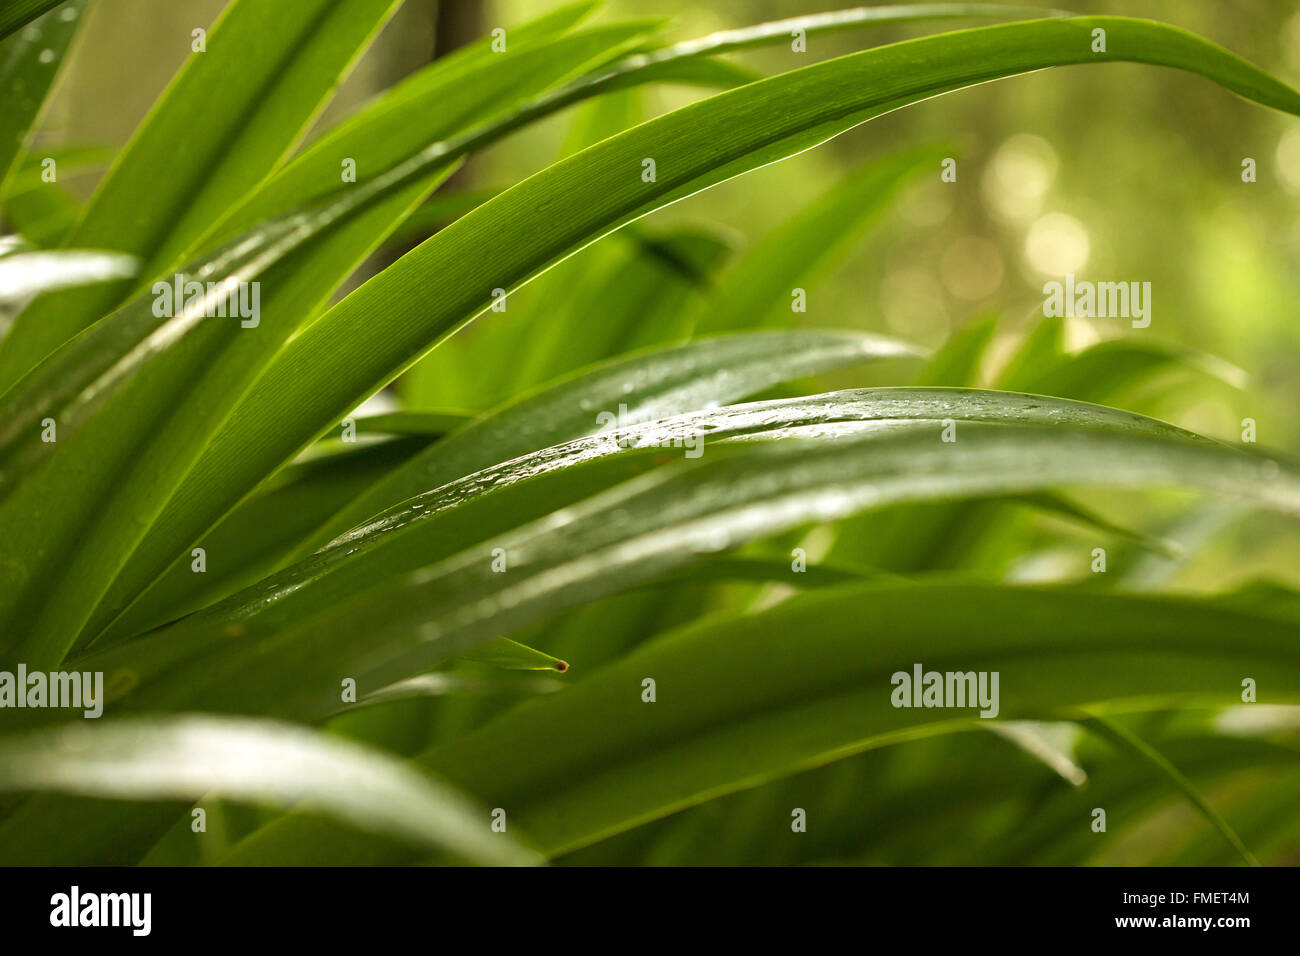 Wet Leaves Stock Photos Wet Leaves Stock Images Alamy